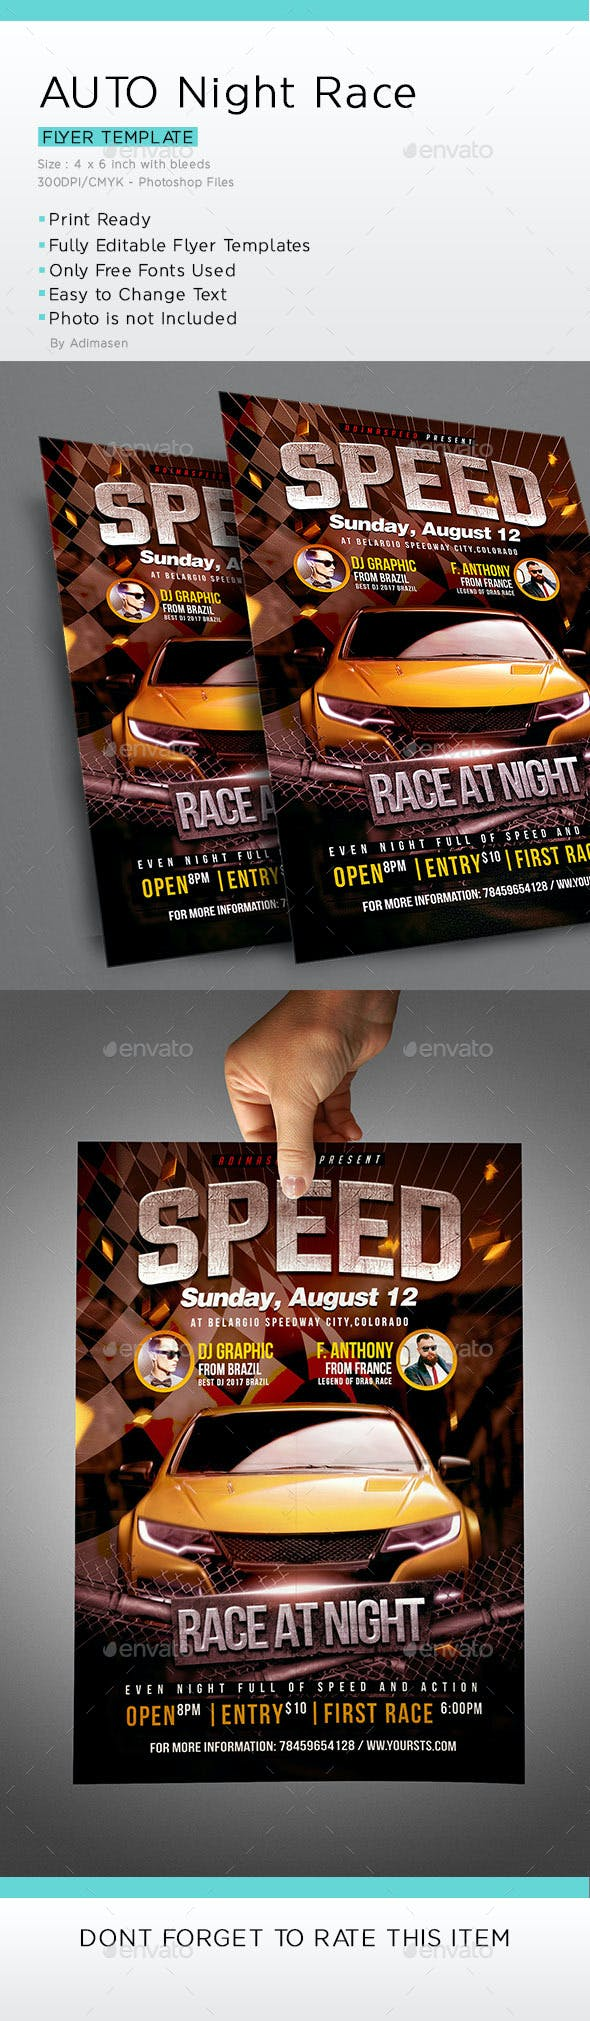 auto racing flyer template by adimasen graphicriver